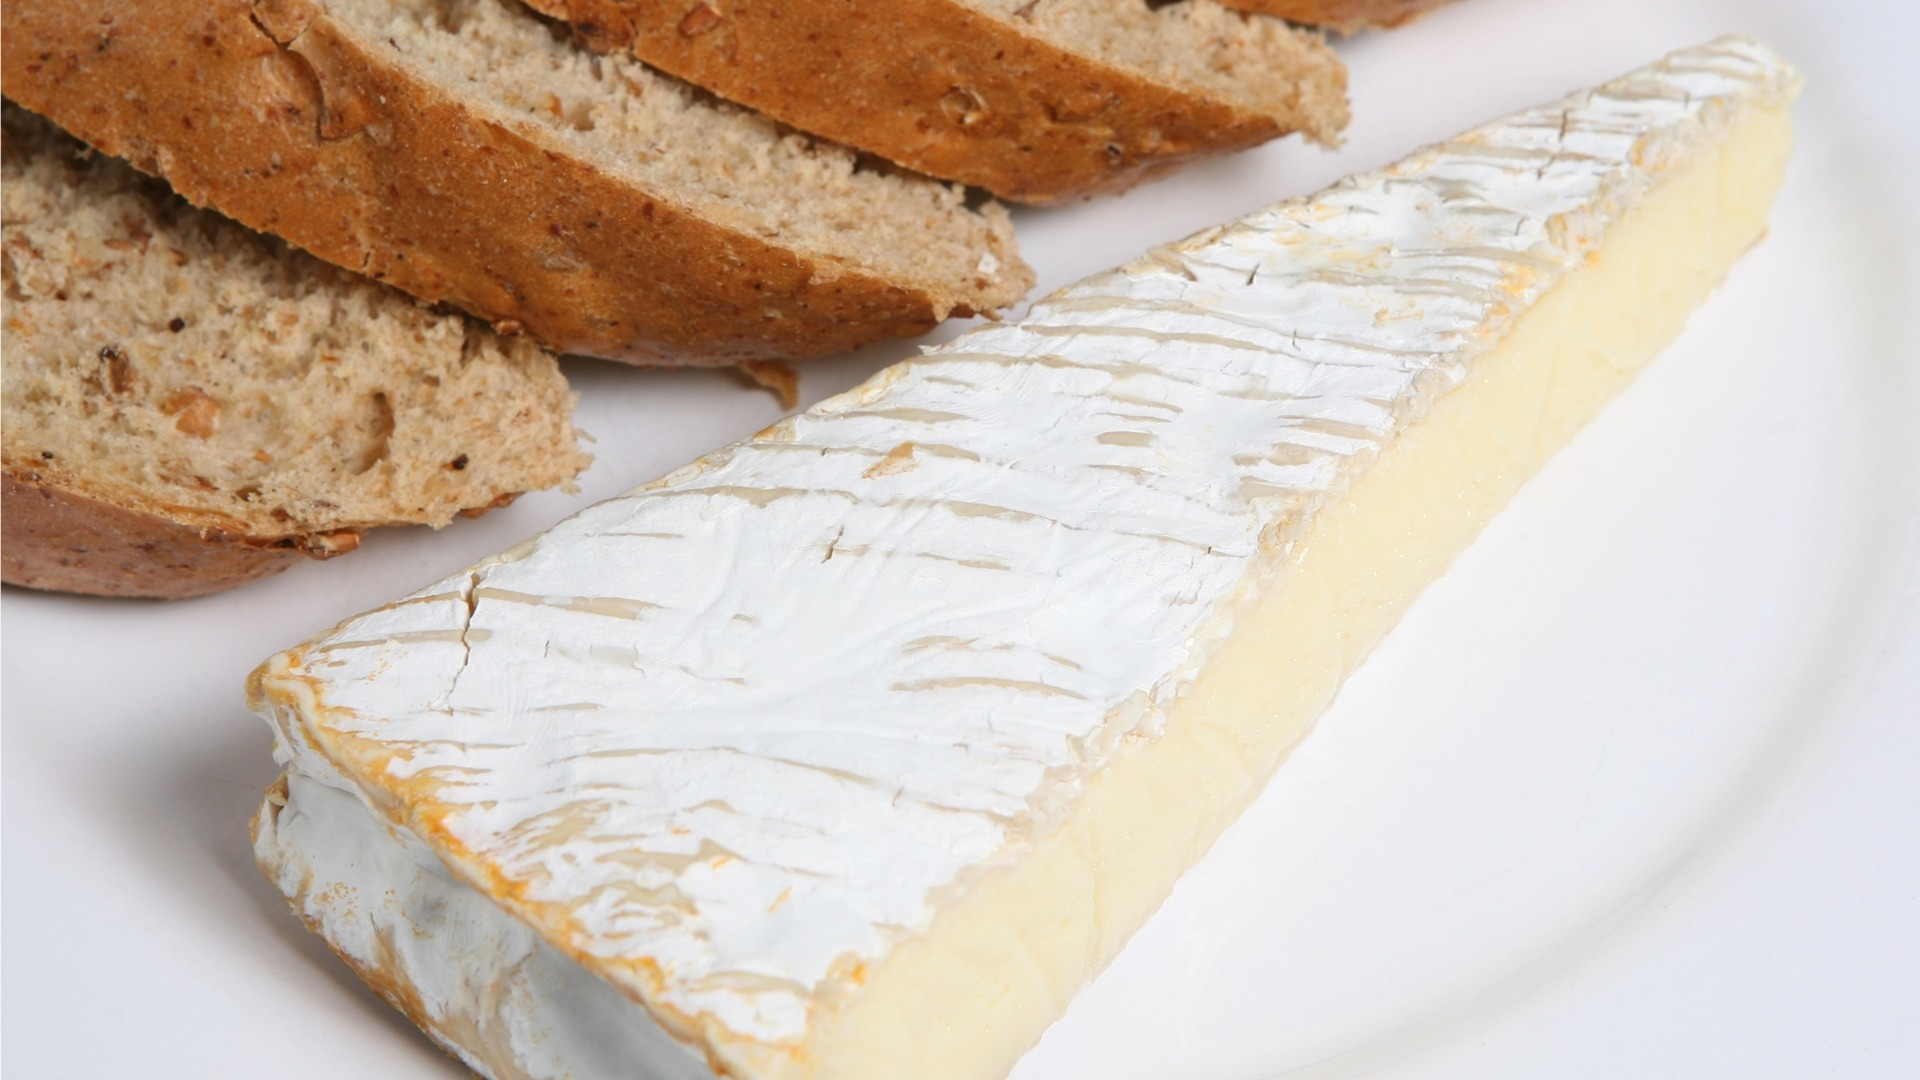 Brie de Meaux, french, cows milk, normandy